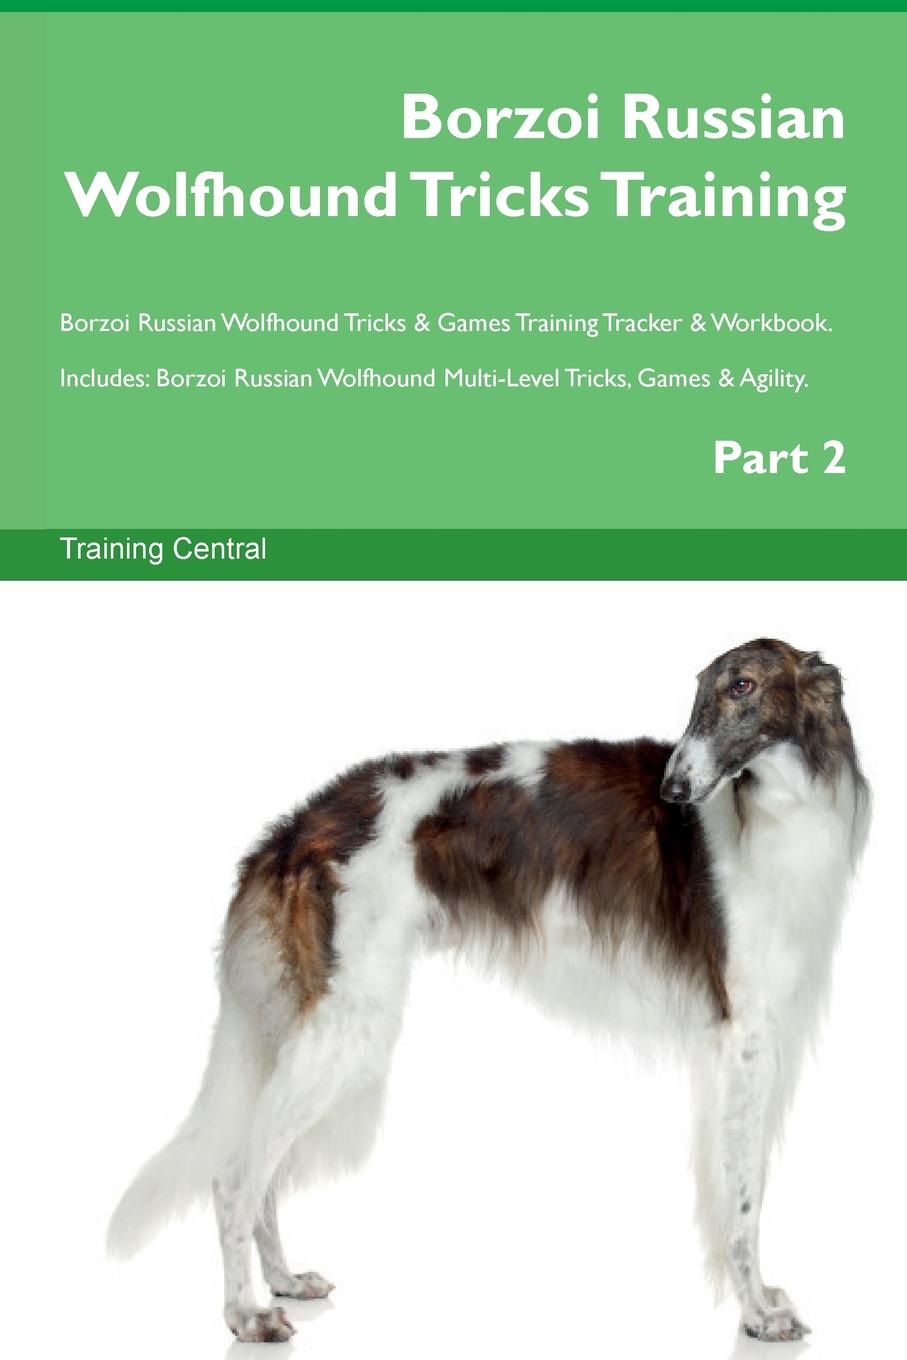 Training Central Borzoi Russian Wolfhound Tricks Training Borzoi Russian Wolfhound Tricks . Games Training Tracker . Workbook. Includes. Borzoi Russian Wolfhound Multi-Level Tricks, Games . Agility. Part 2 this book loves you